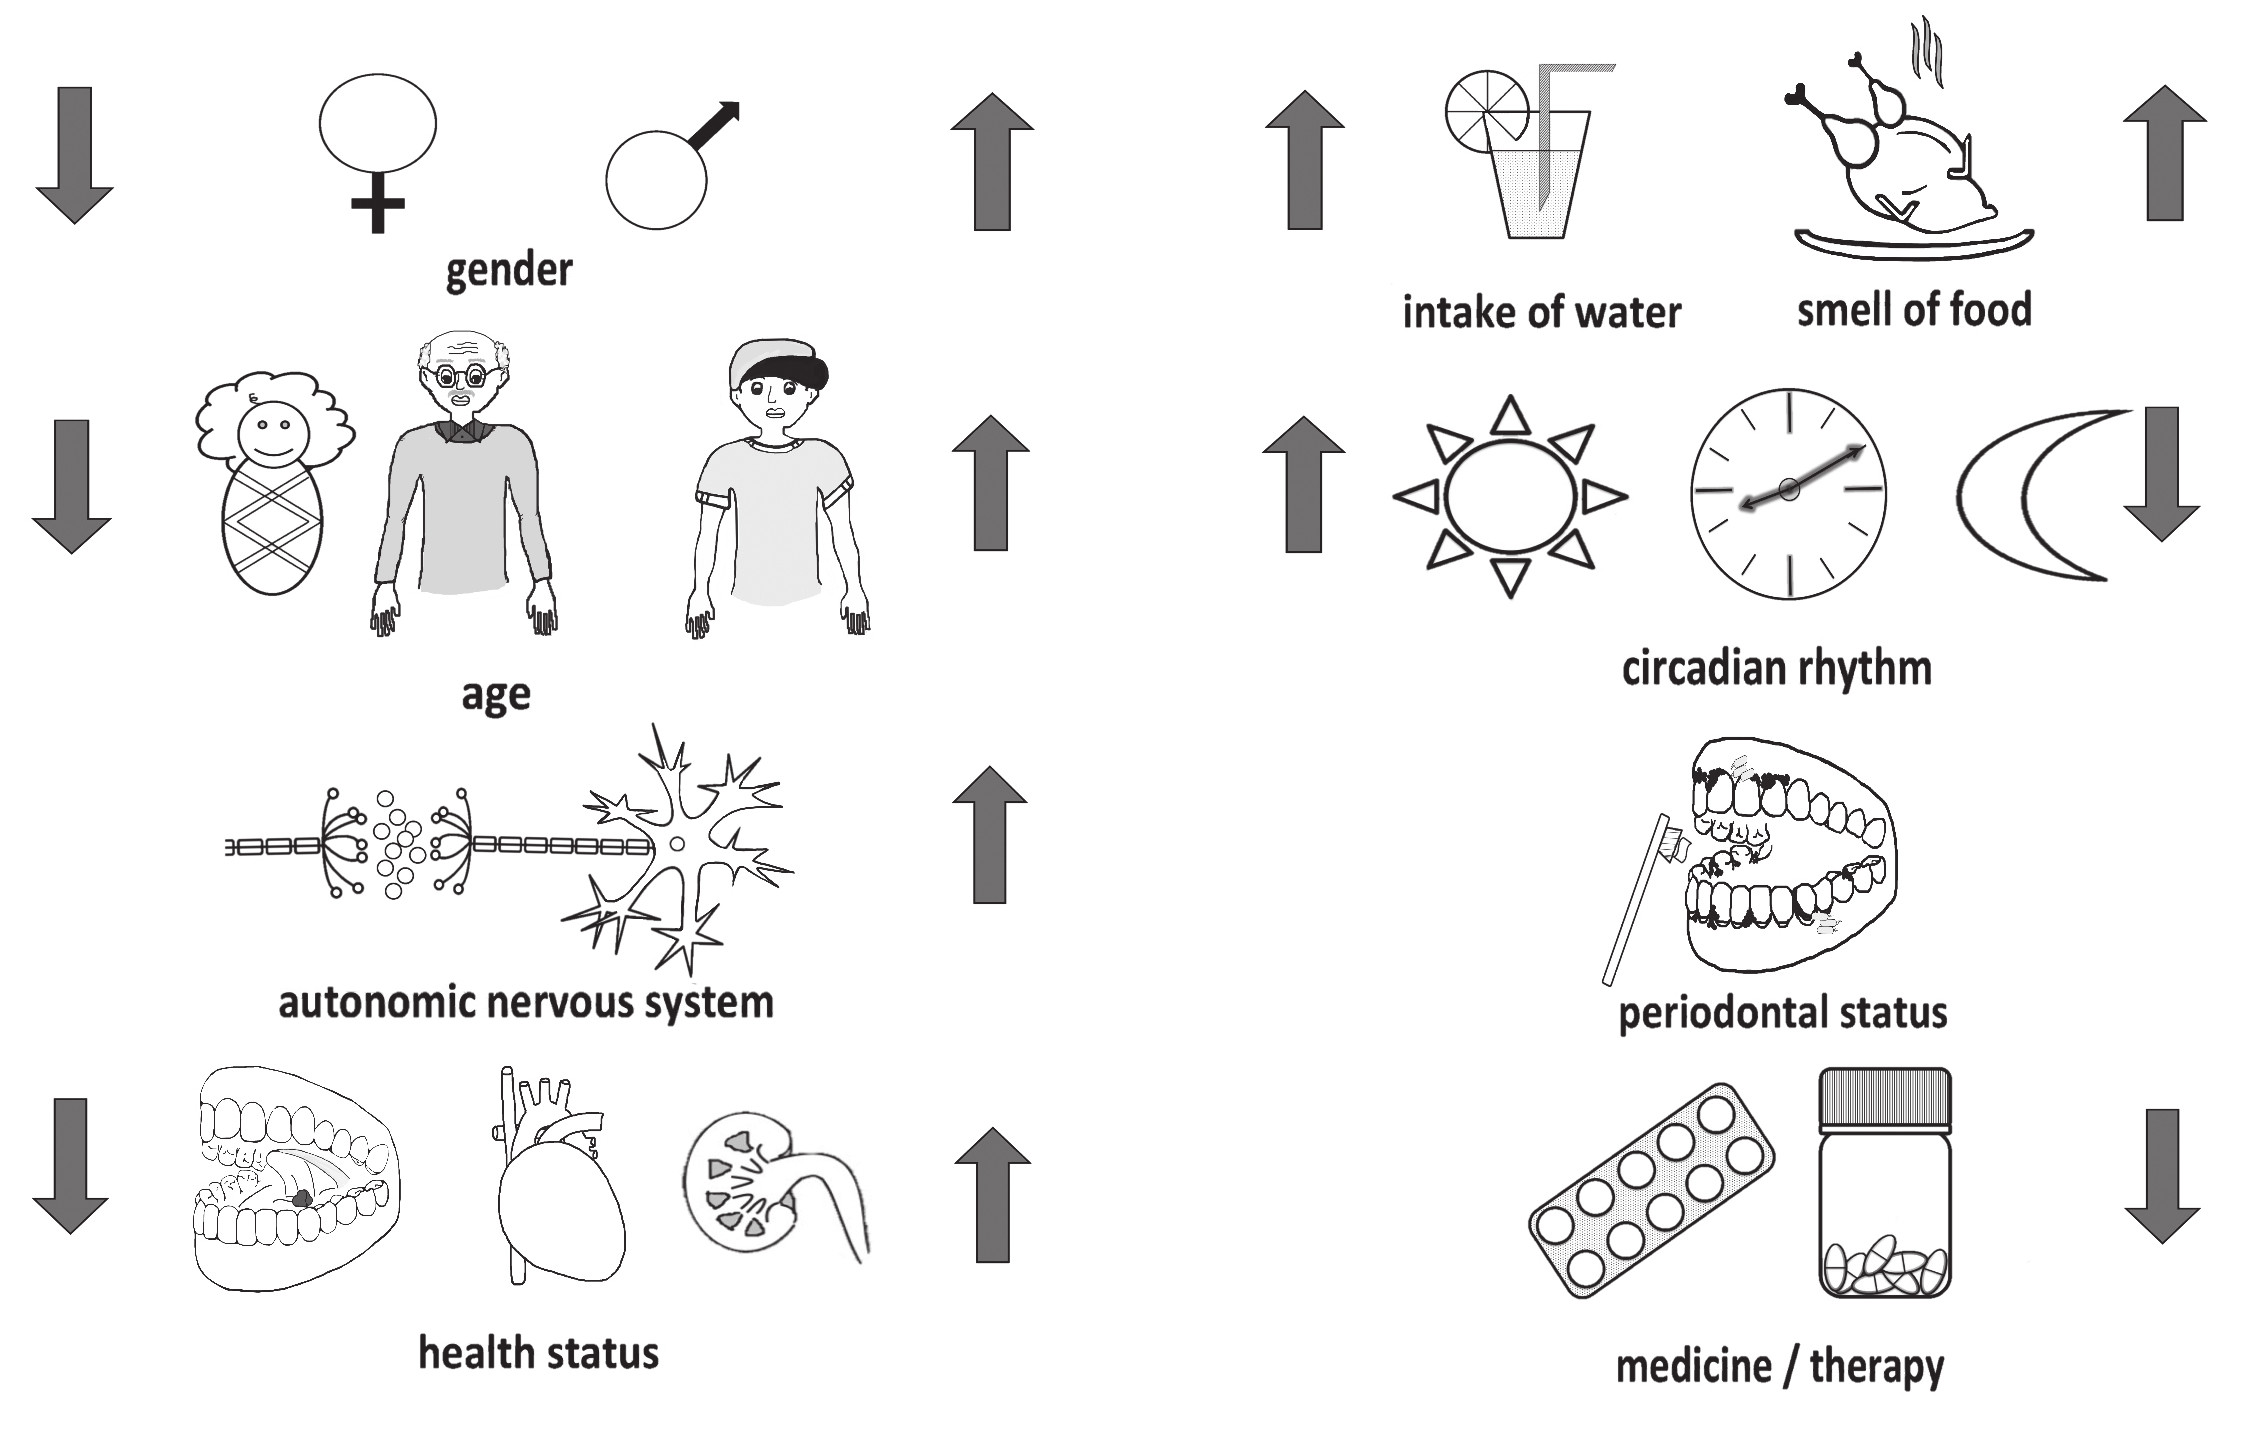 Factors influencing the production of saliva include e.g. gender, age, autonomous nerve system, circadian rhythm,